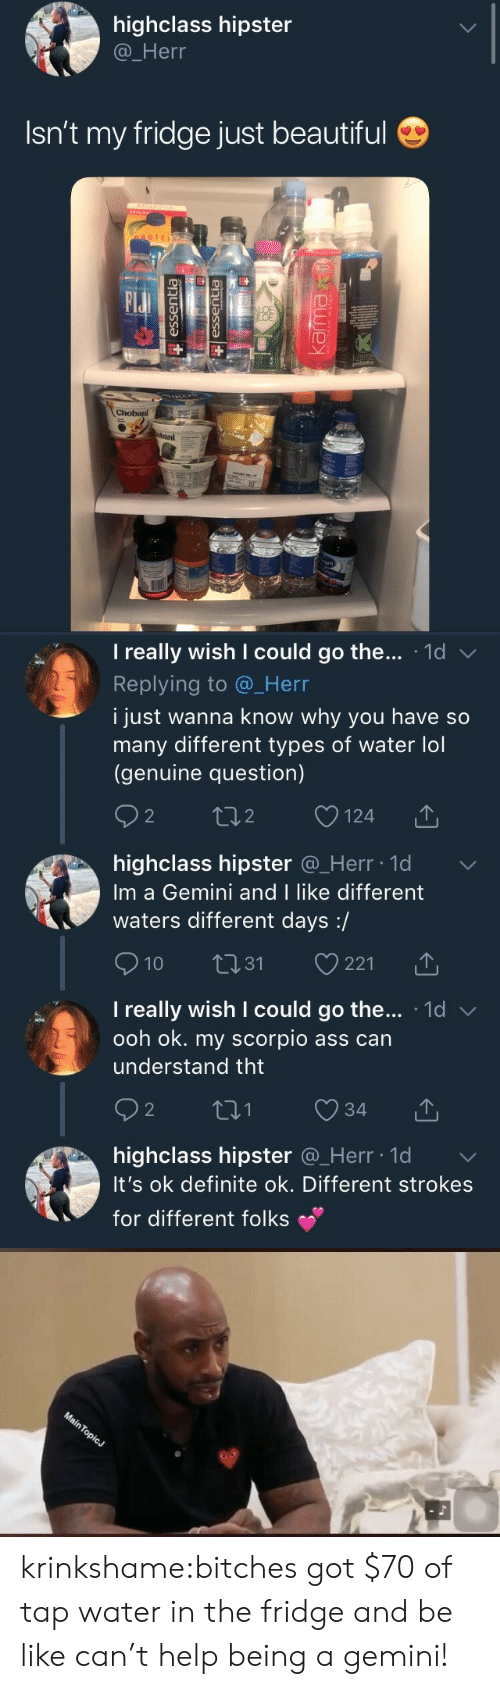 Ass, Be Like, and Beautiful: highclass hipster  @_Herr  Isn't my fridge just beautiful  OTEI  Elu  BAI   I really wish I could go the . 1d  Replying to @_Herr  i just wanna know why you have so  many different types of water lol  (genuine question)  2  o124  2  highclass hipster @_Herr ld  Im a Gemini and I like different  waters different days:/  10 31 221  I really wish I could go the... 1d v  ooh ok. my scorpio ass can  understand tht  2  highclass hipster Q_Herr lo  It's ok definite ok. Different strokes  for different folks krinkshame:bitches got $70 of tap water in the fridge and be like can't help being a gemini!